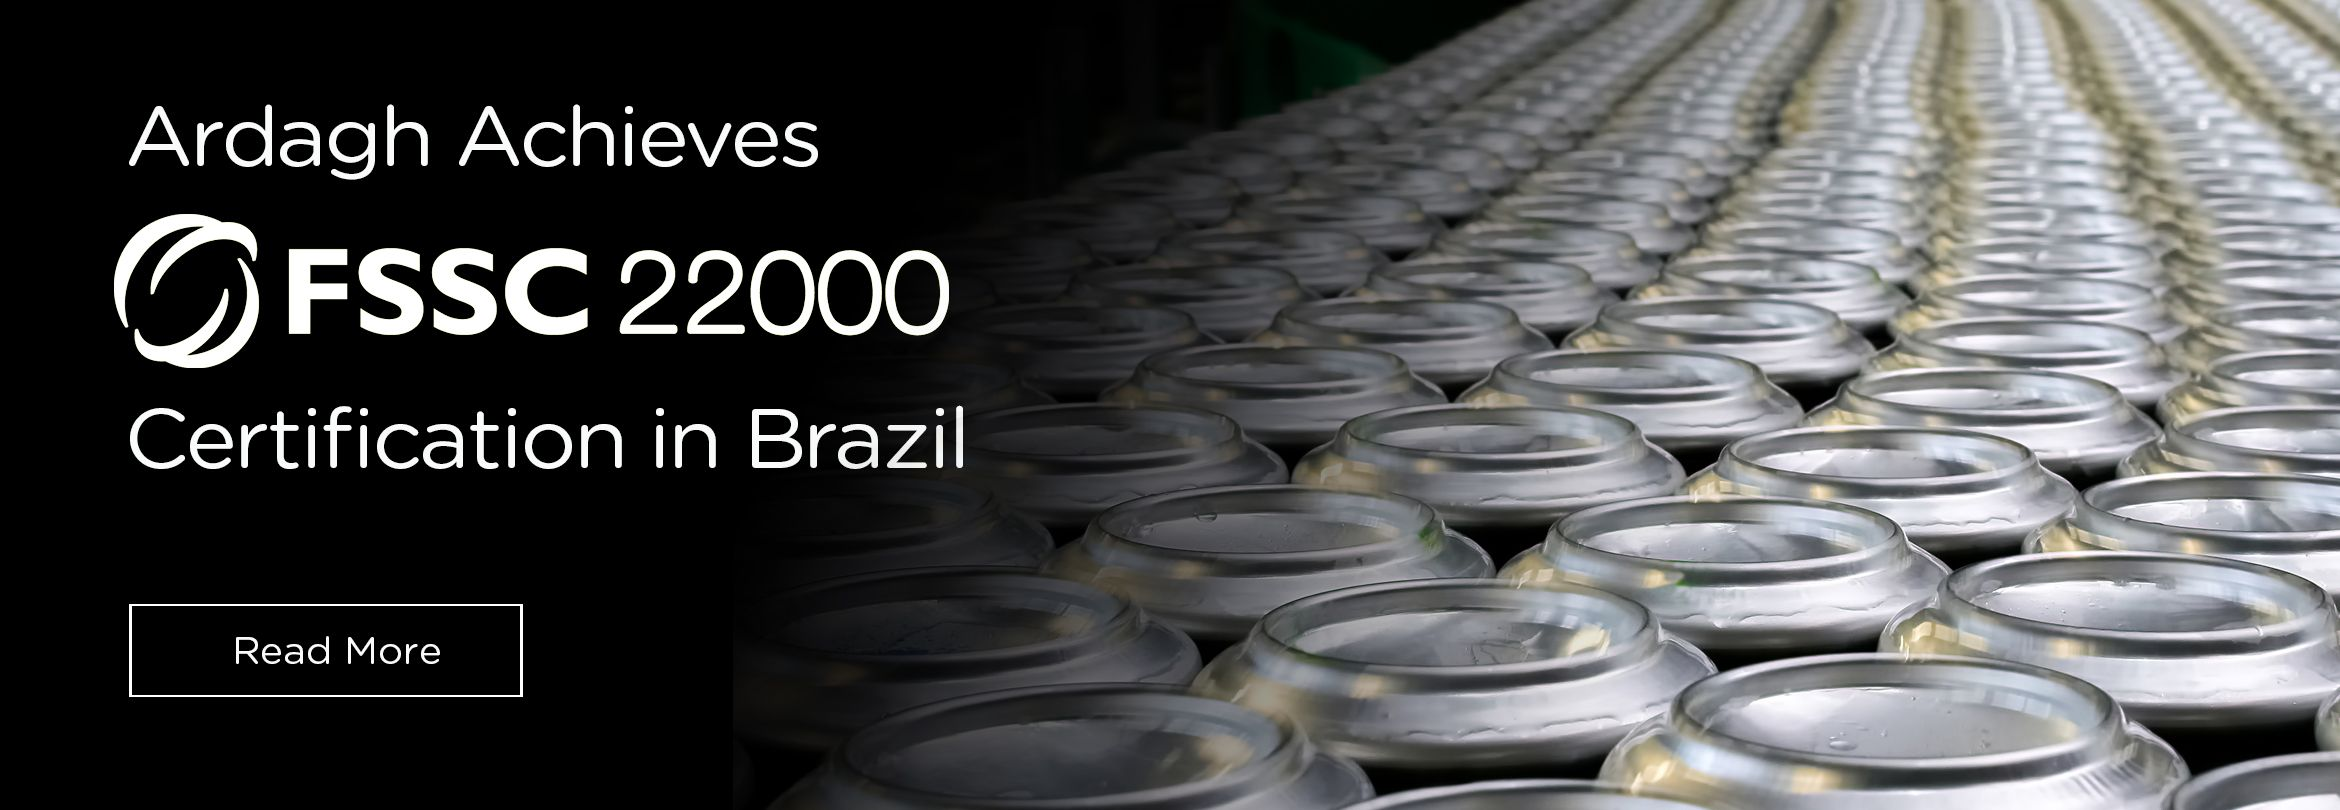 Ardagh Jacareí and Alagoinhas Facilities Achieve FSSC 22000 Food Safety System Certification